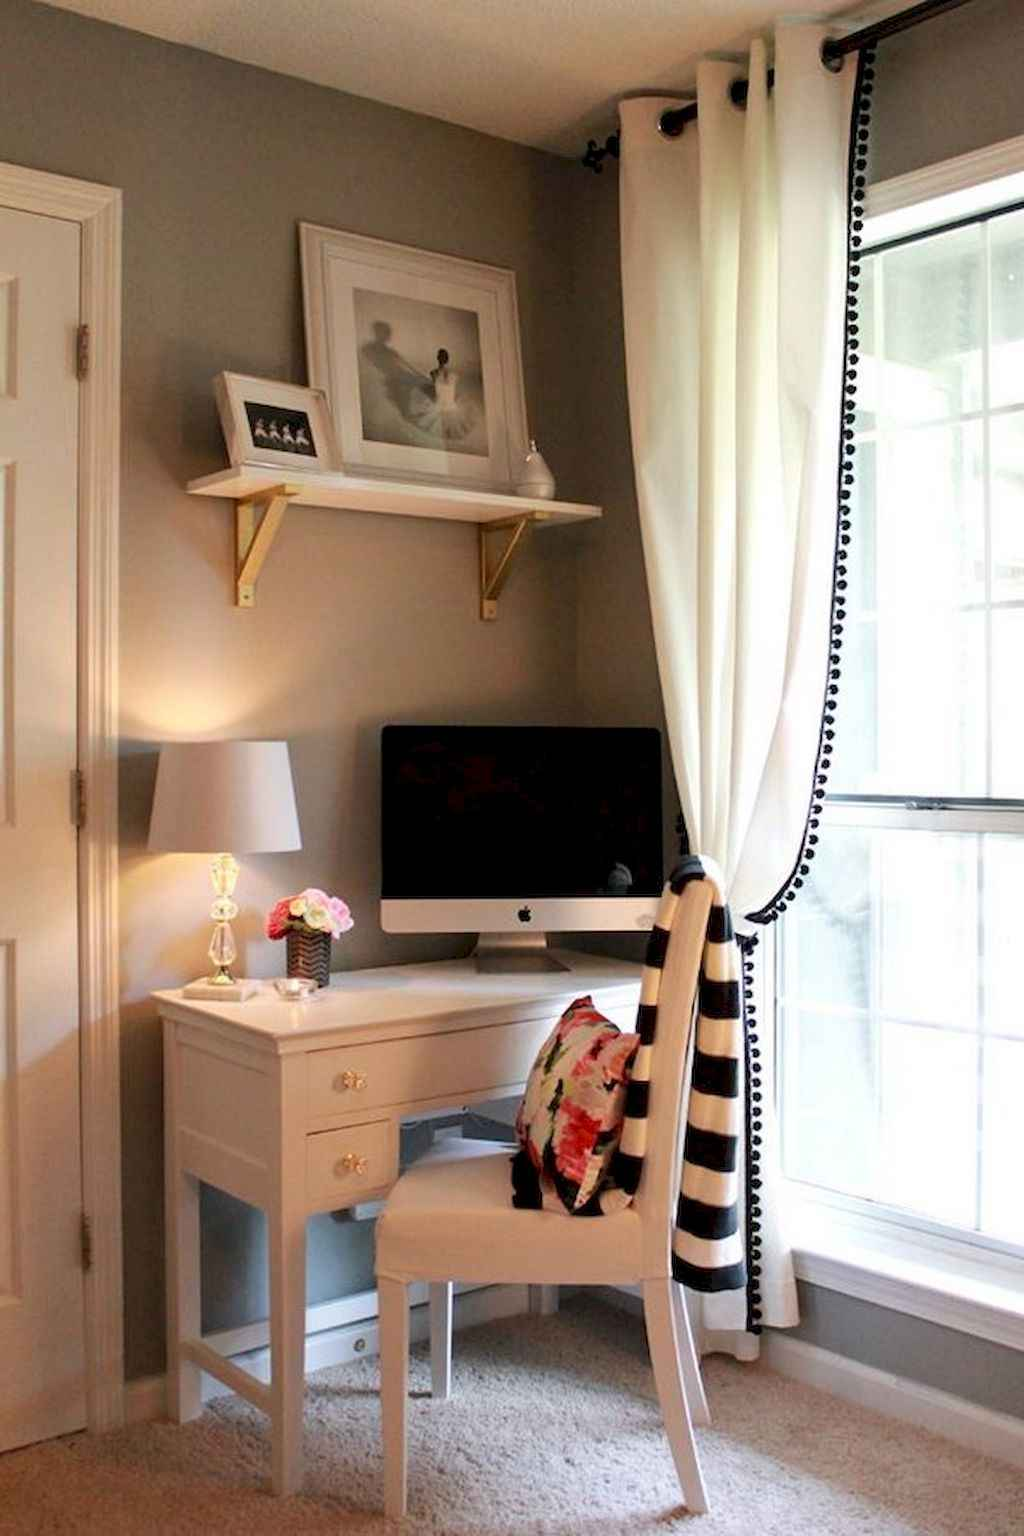 Couples first apartment decorating ideas (5)